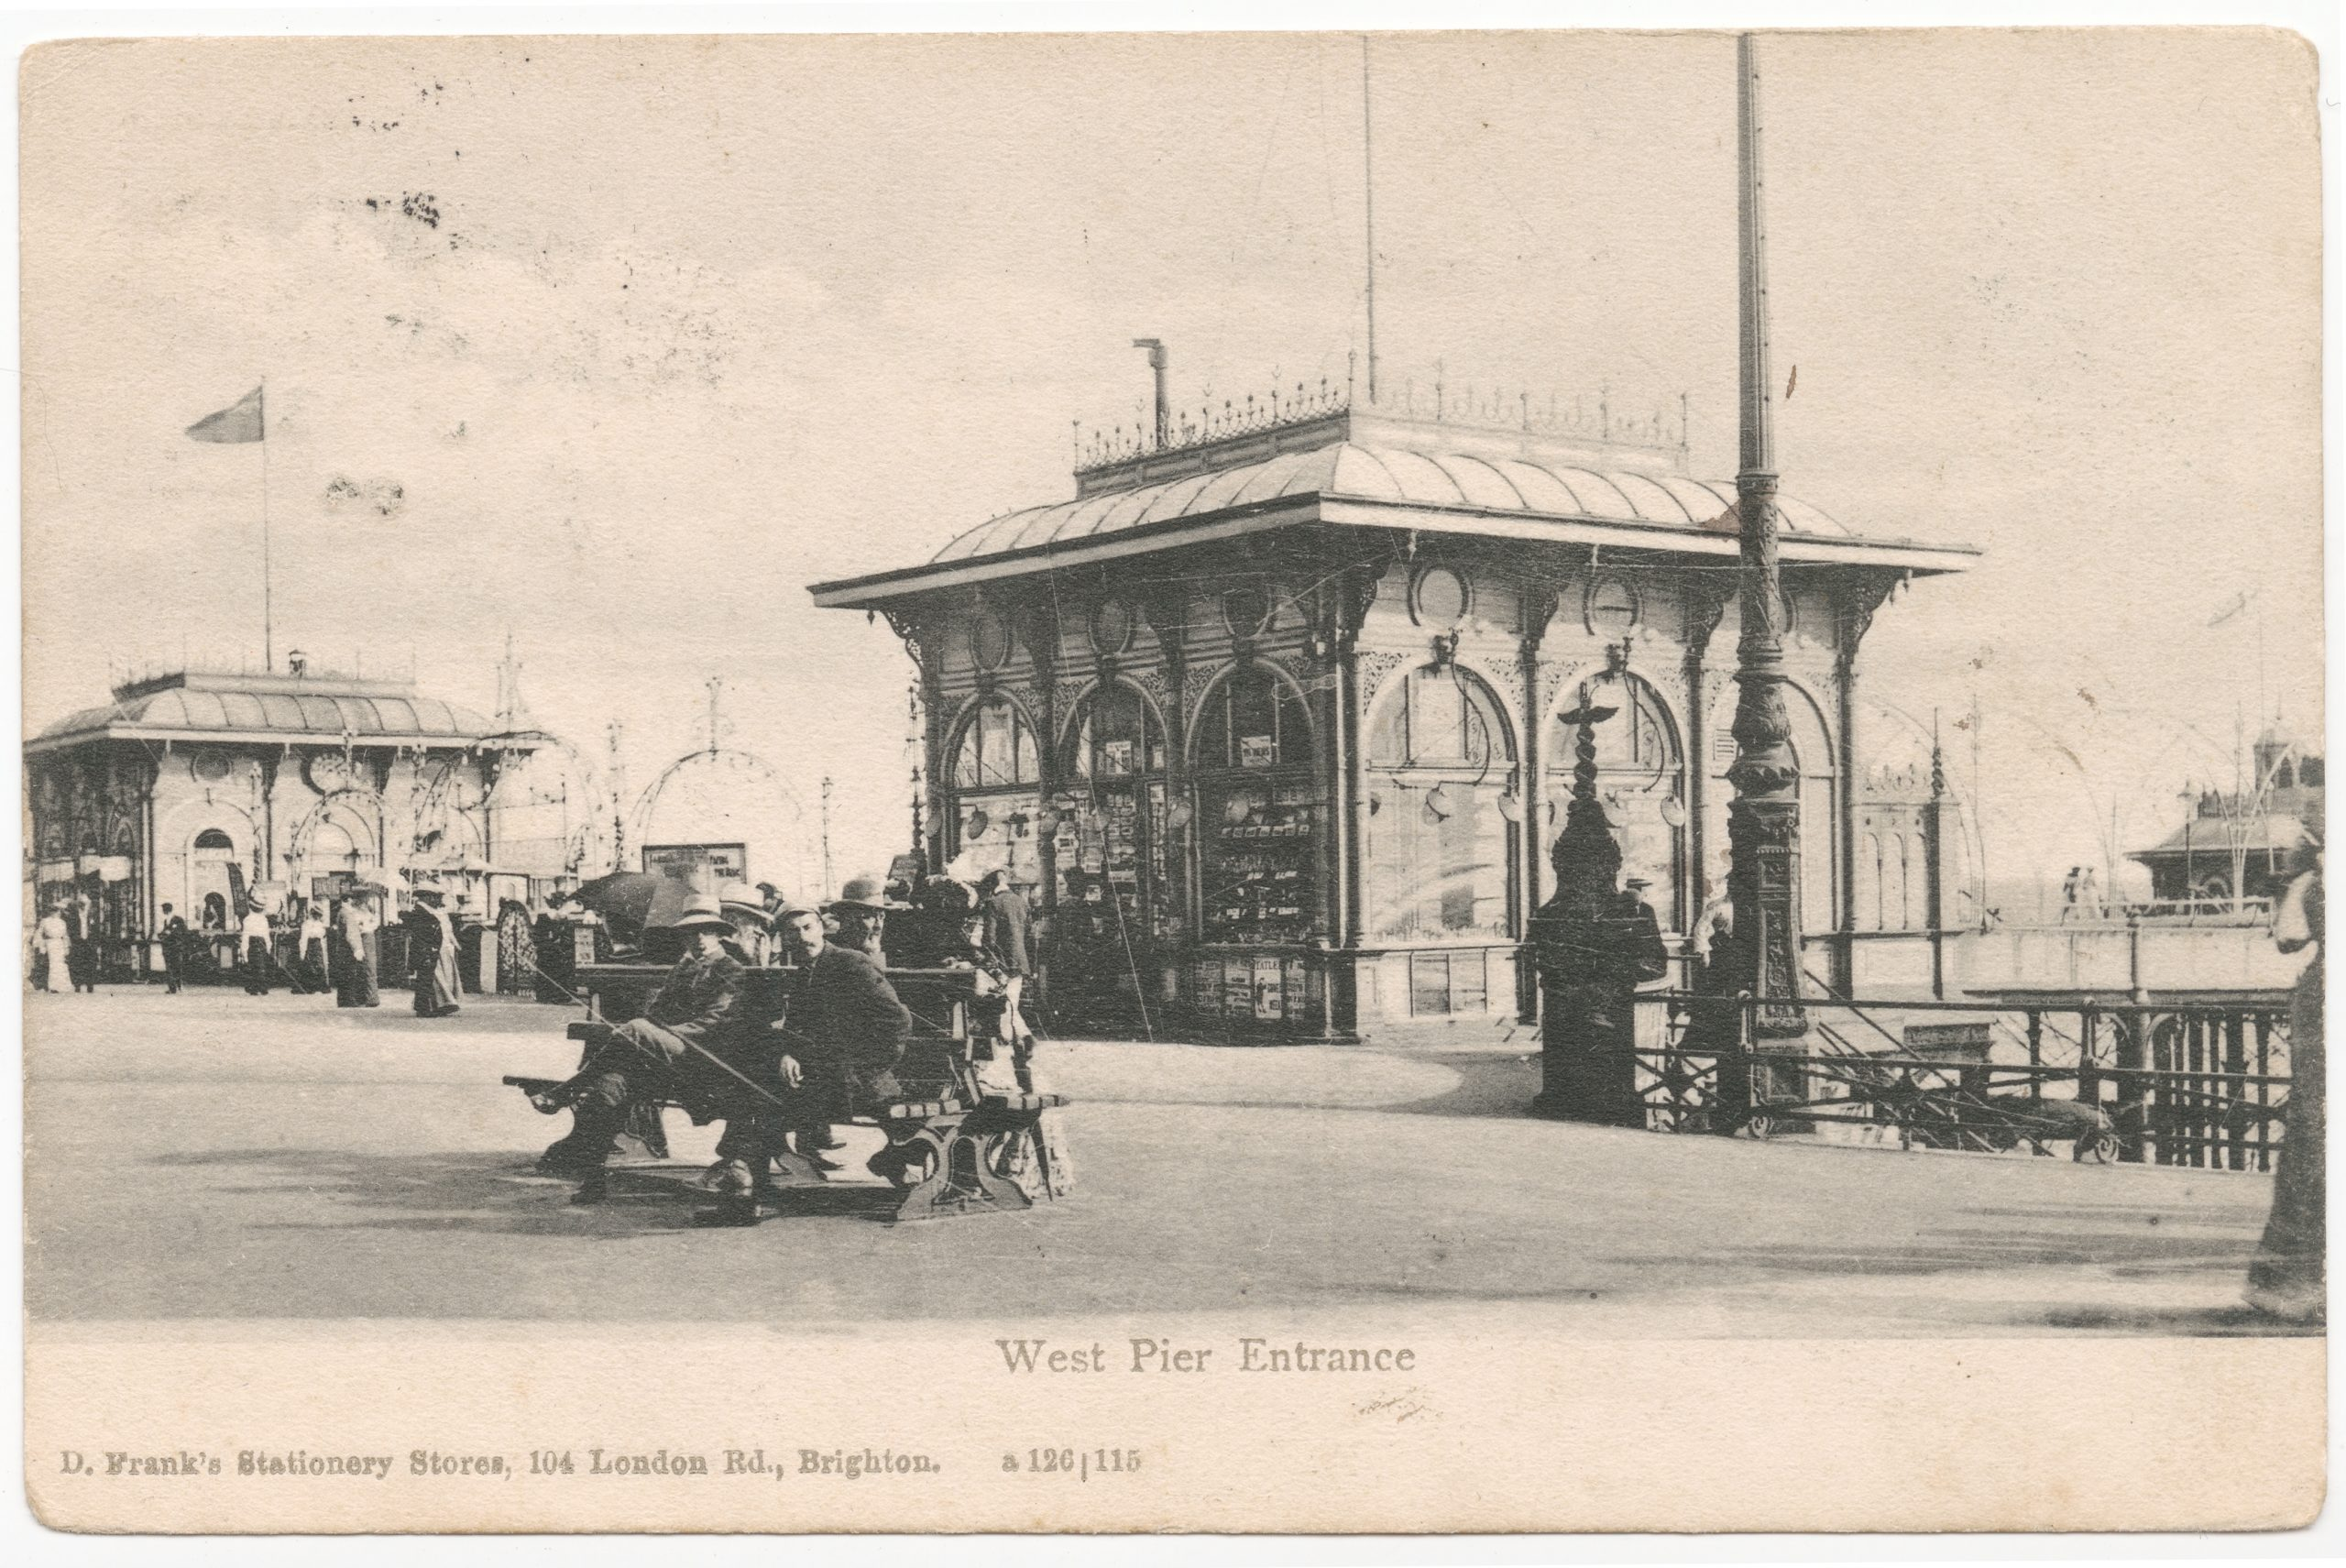 'West Pier Entrance' Postcard, 1904, PH39/04a (item not in exhibition)